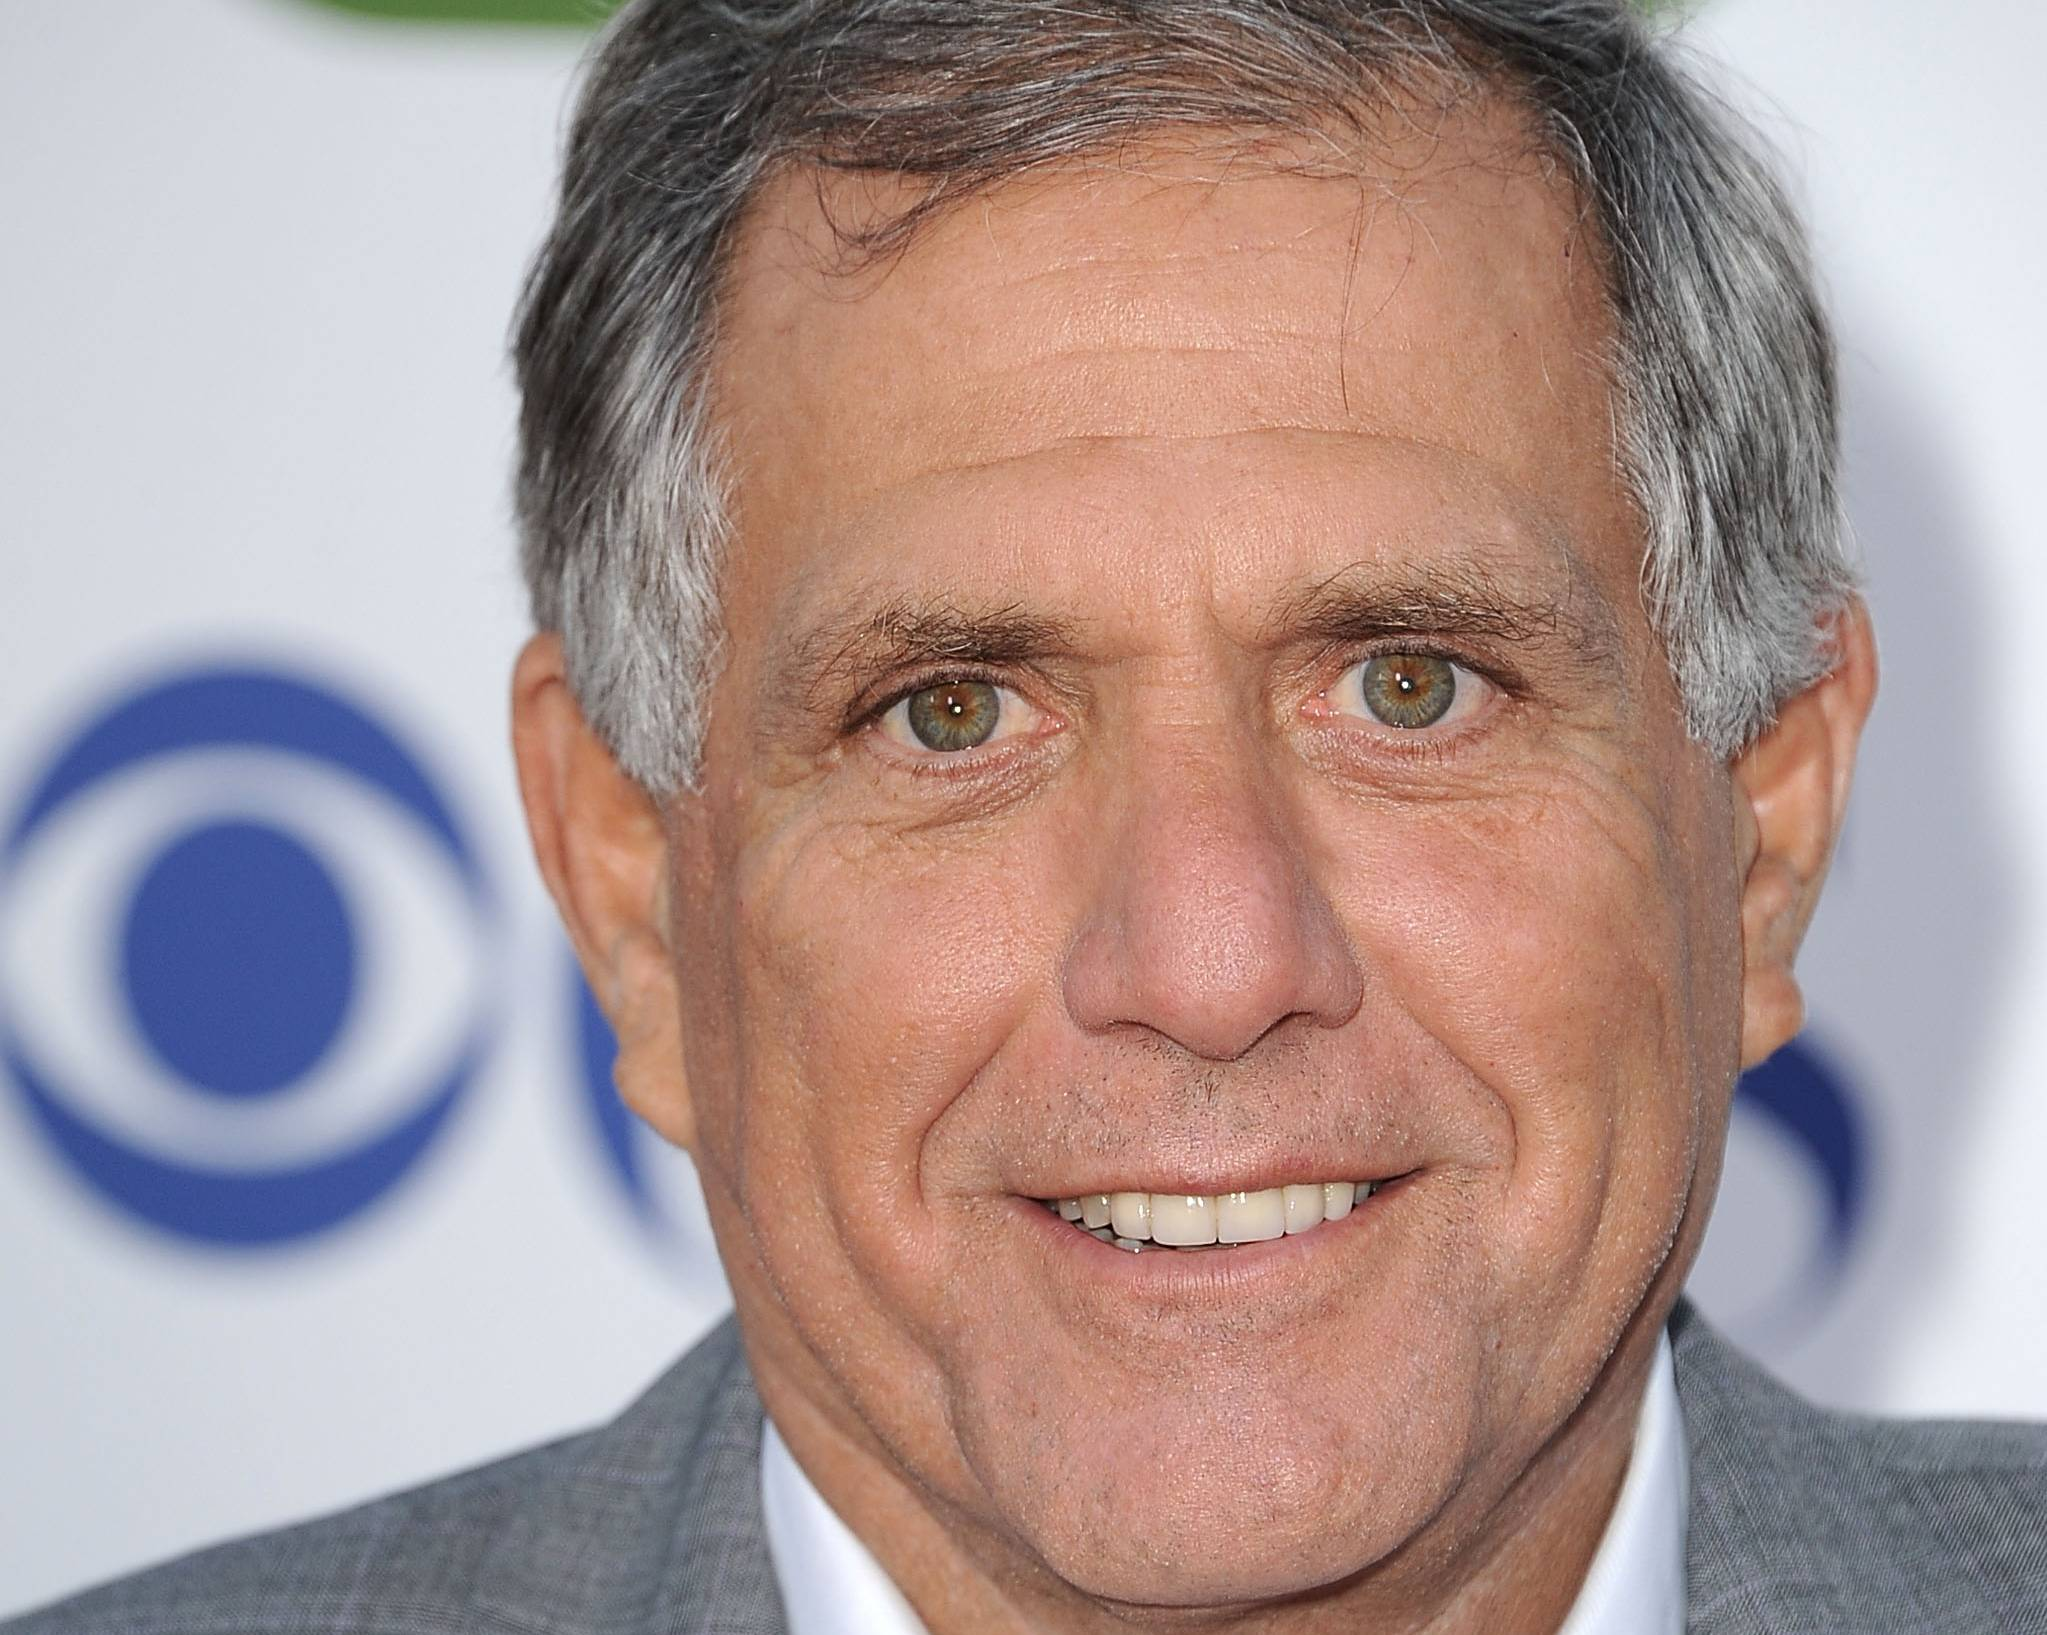 Leslie Moonves, CEO of CBS